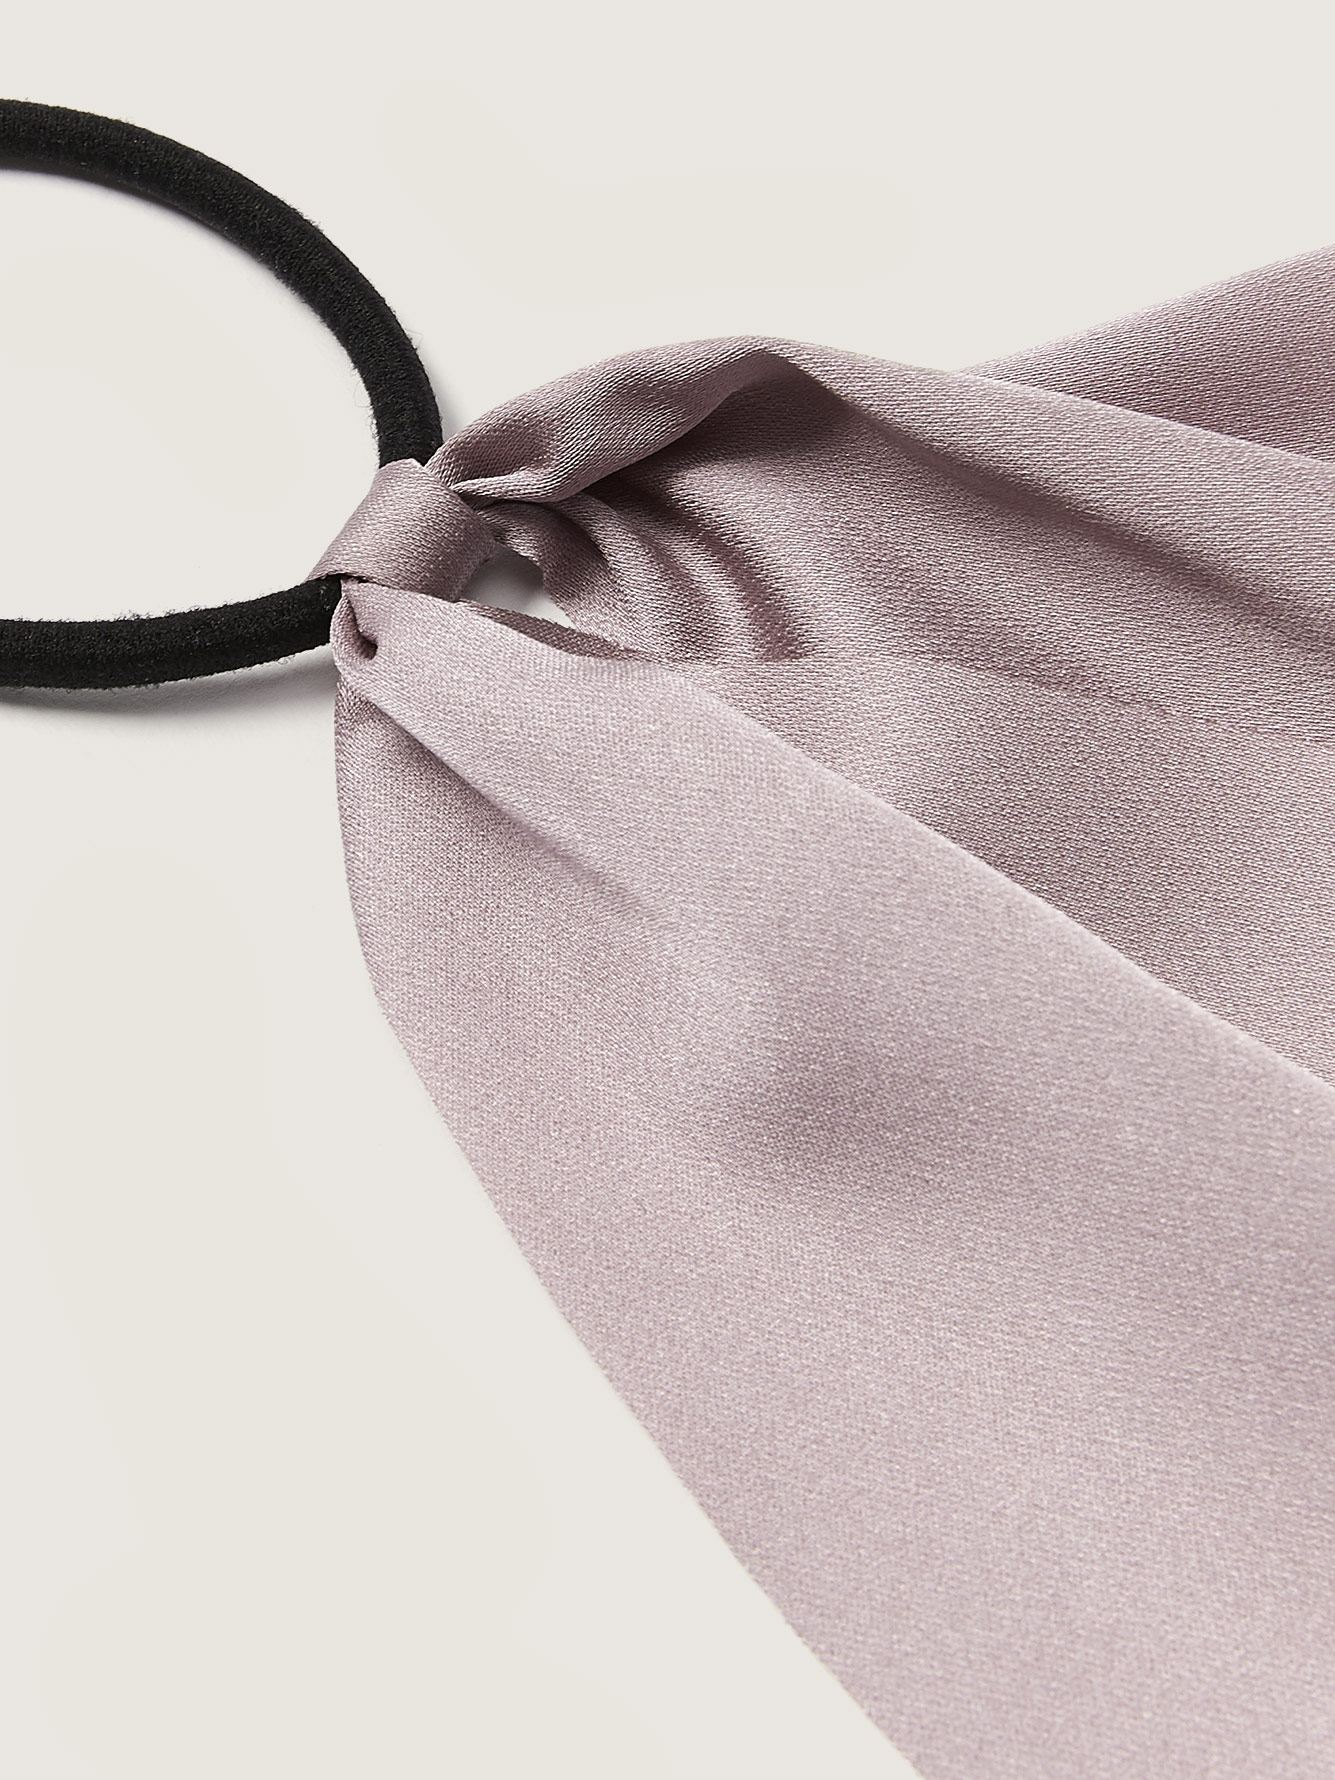 Hair Elastic with Satin Scarf